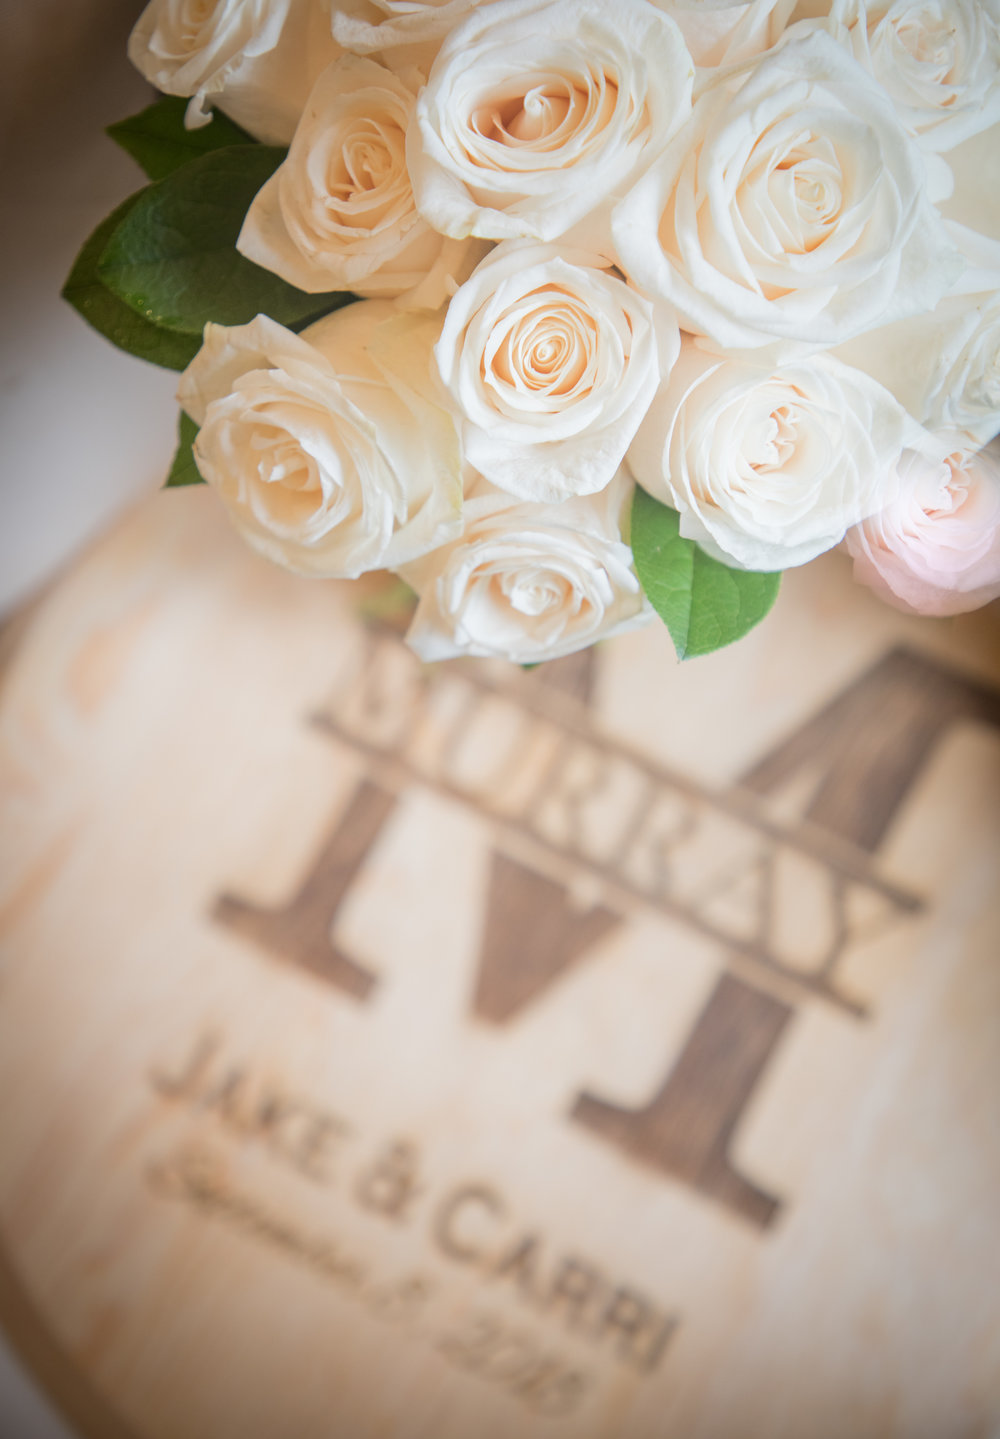 The bride and groom used an engraved wooden plaque instead of a guest book so that it could be displayed in their home.